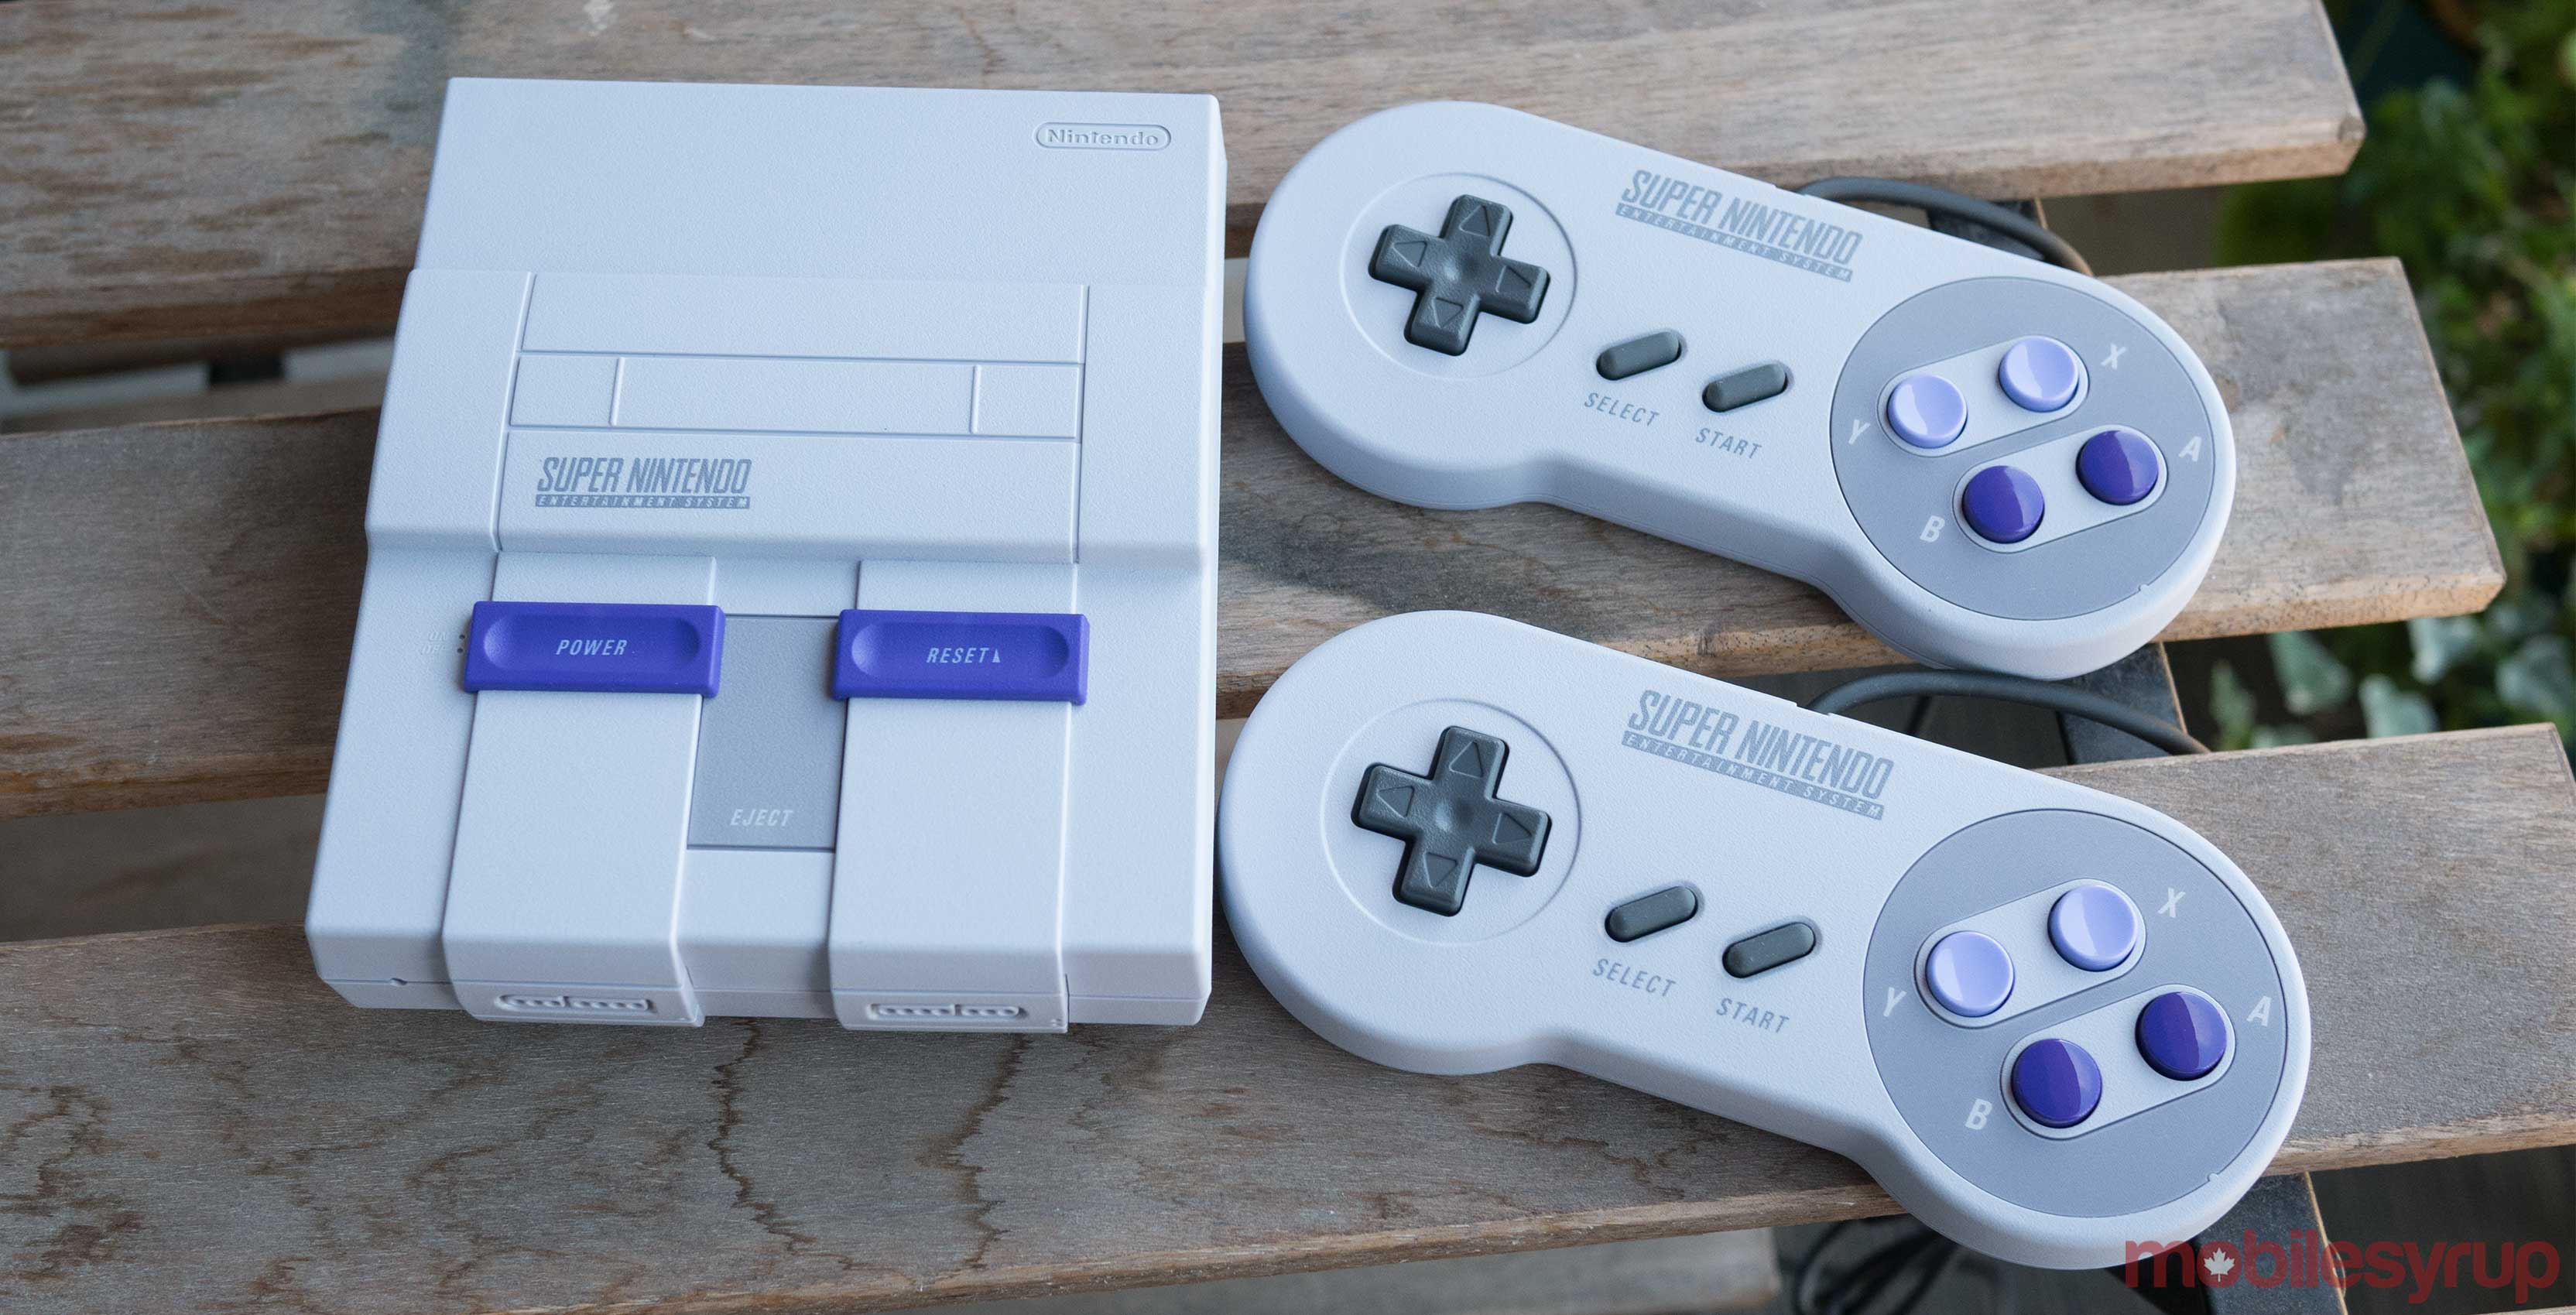 SNES Classic on table